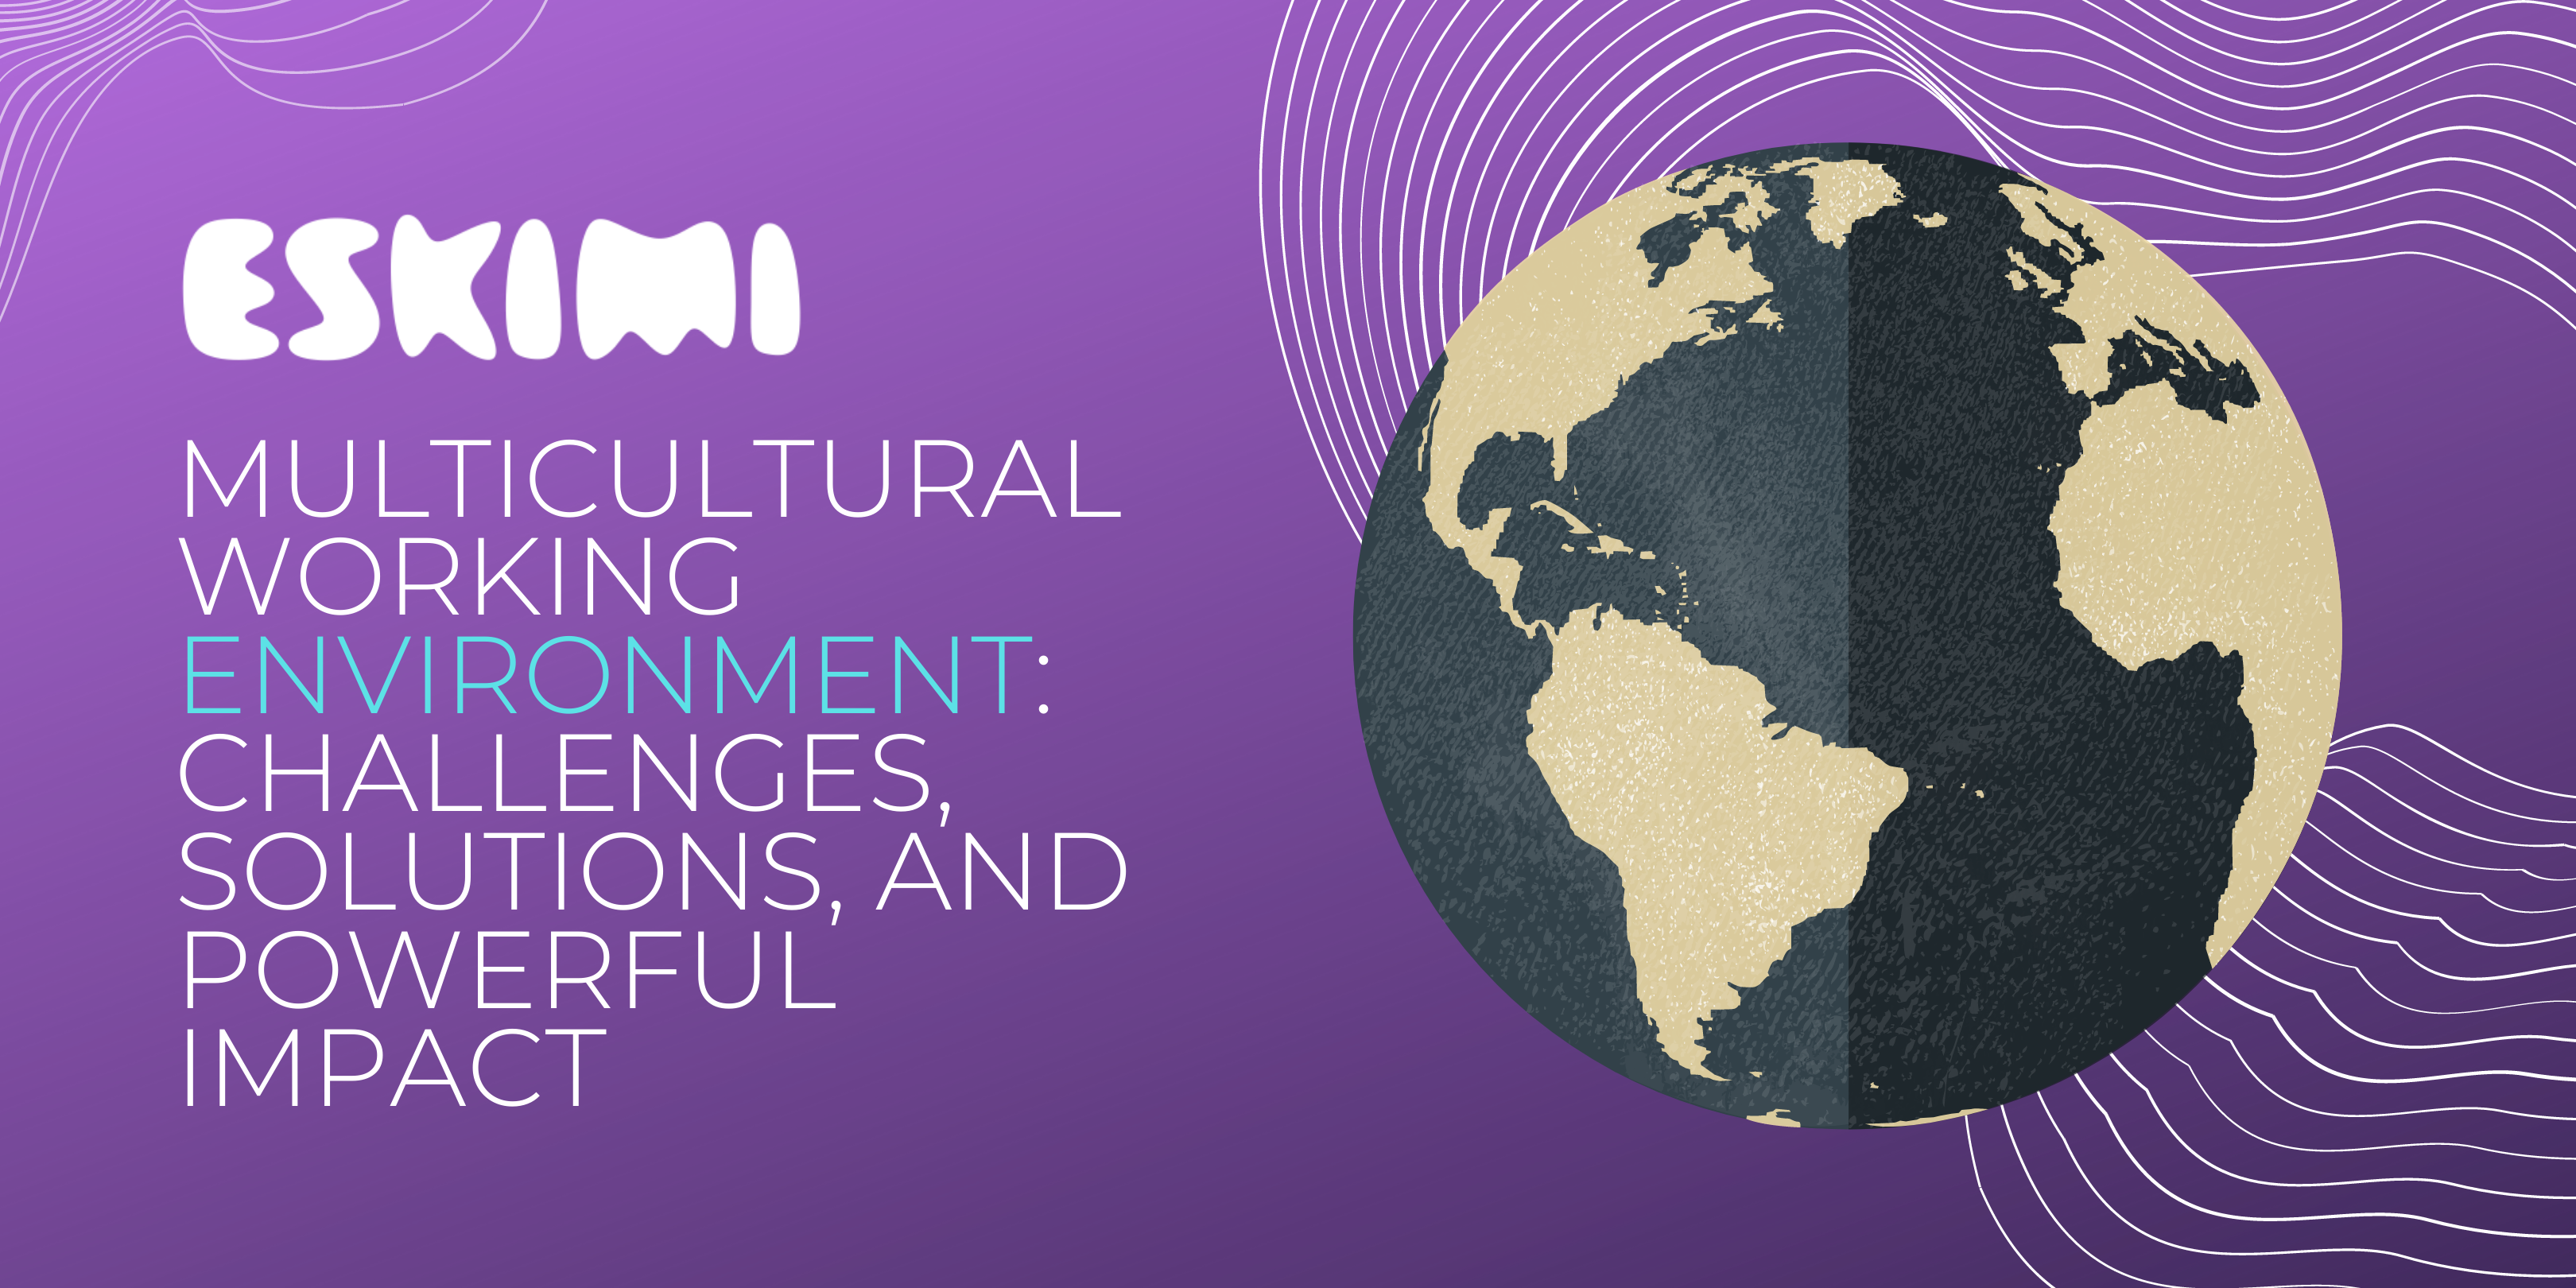 Multicultural Working Environment: Challenges, Solutions, and Powerful Impact